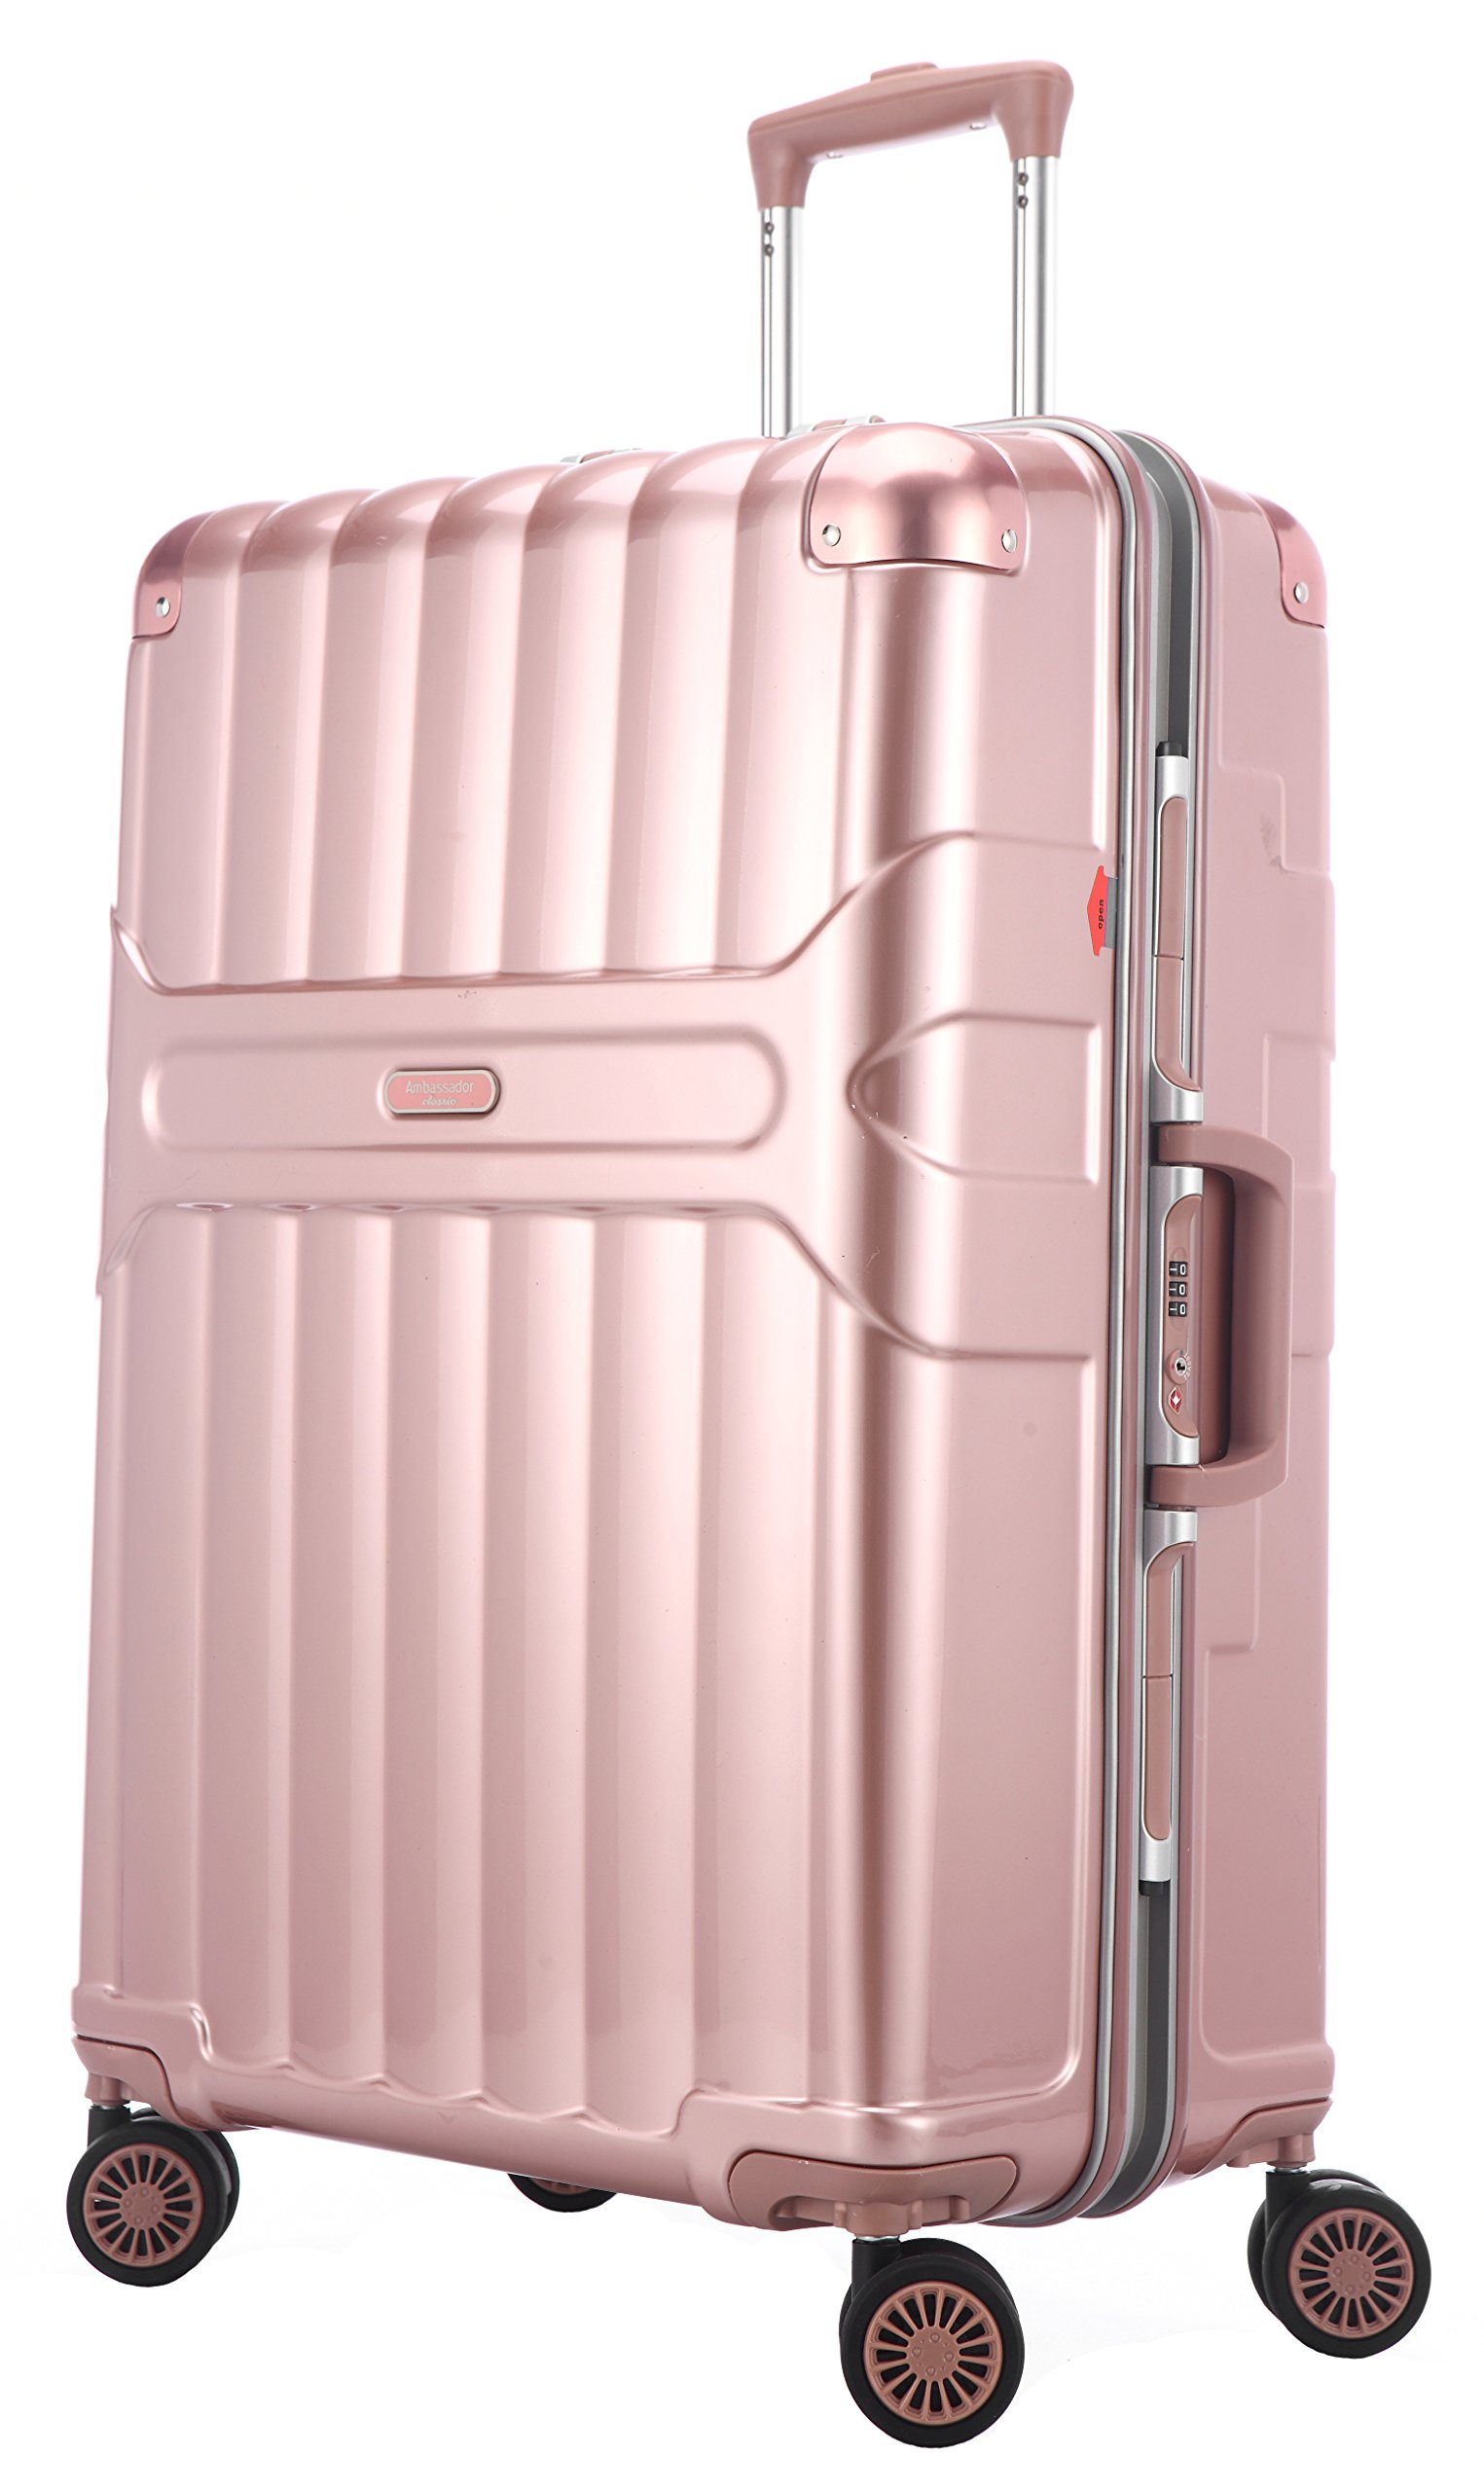 Ambassador Luggage Aluminum Frame Carry On Luggage Polycarbonate Spinner Suitcase Rose Gold